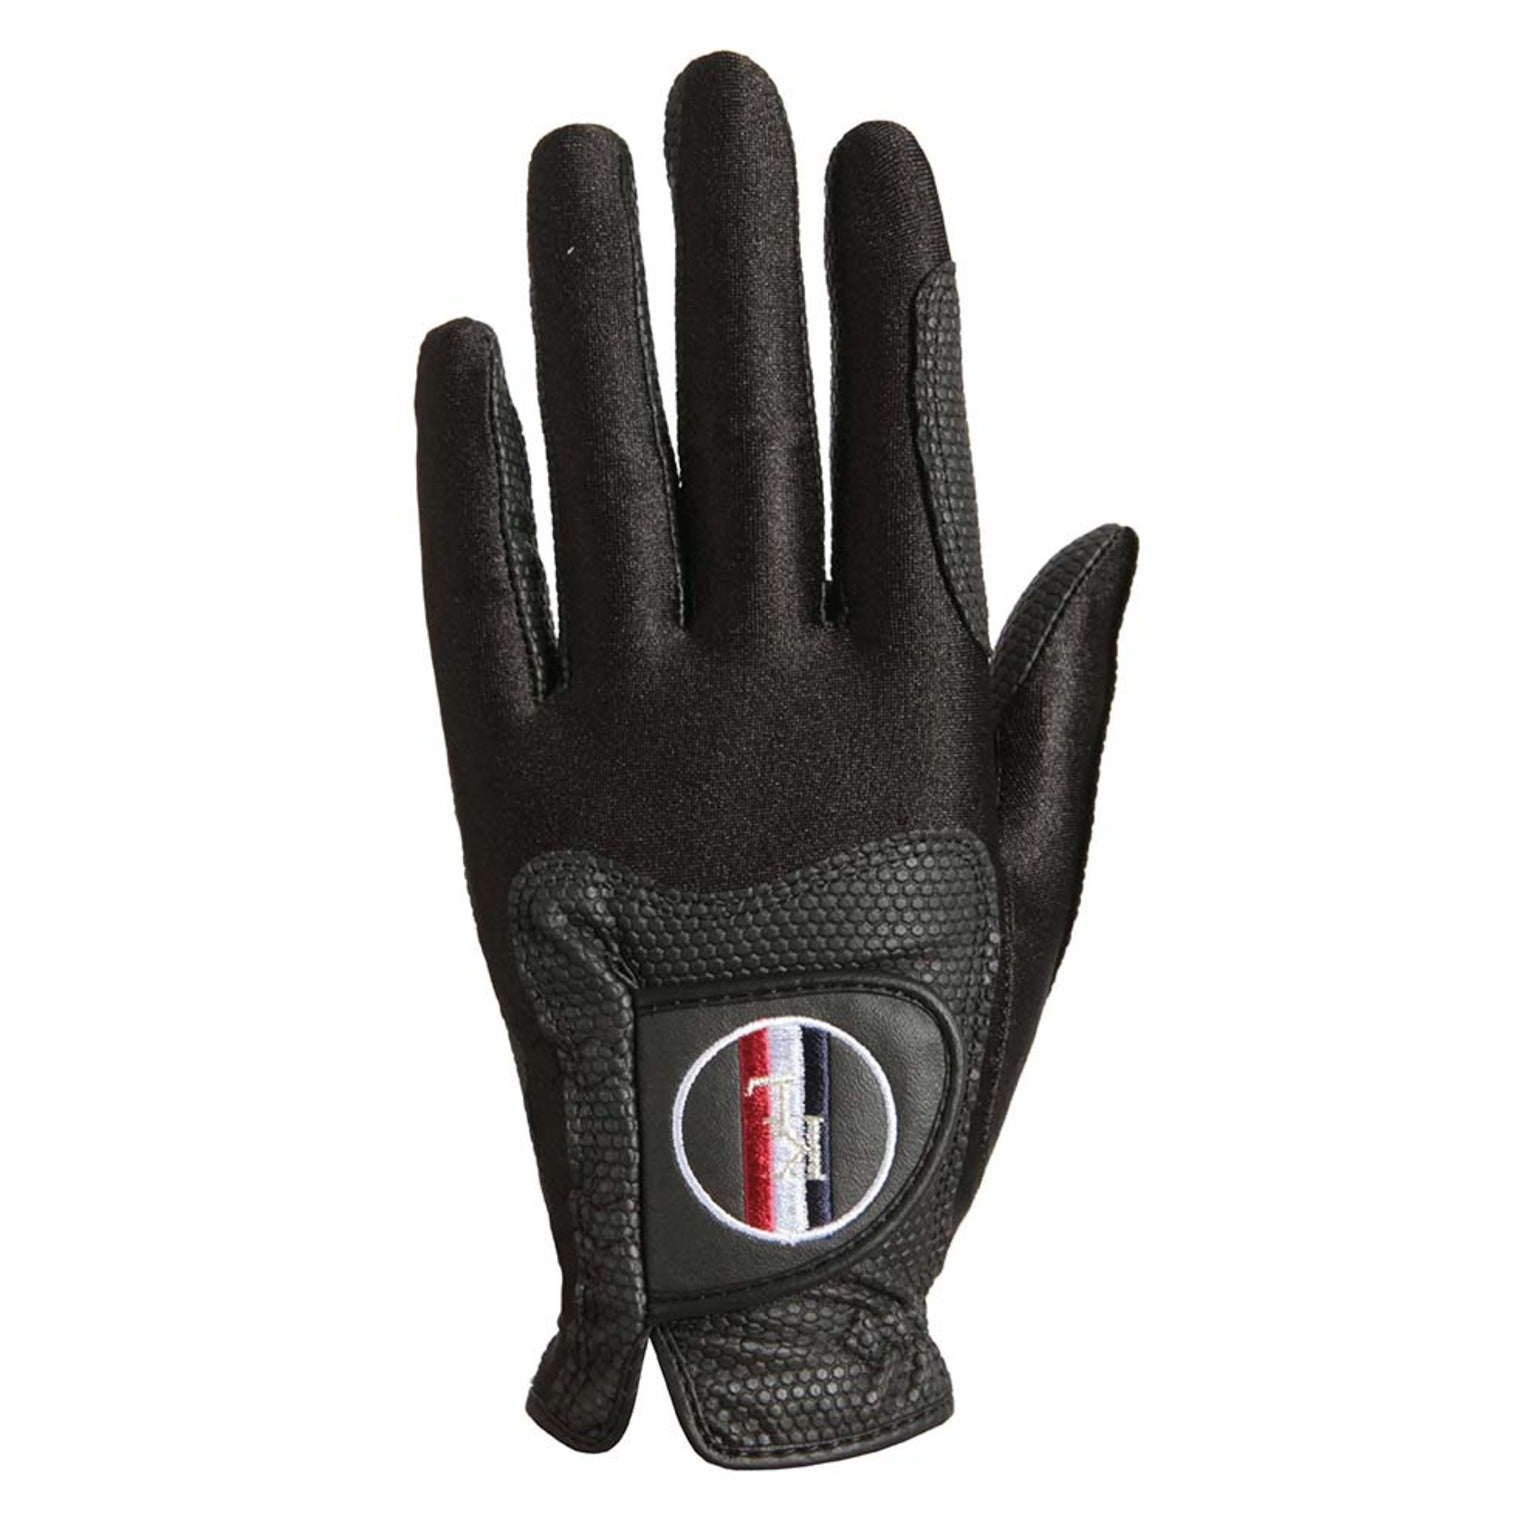 Classic Riding Gloves Unisex Black